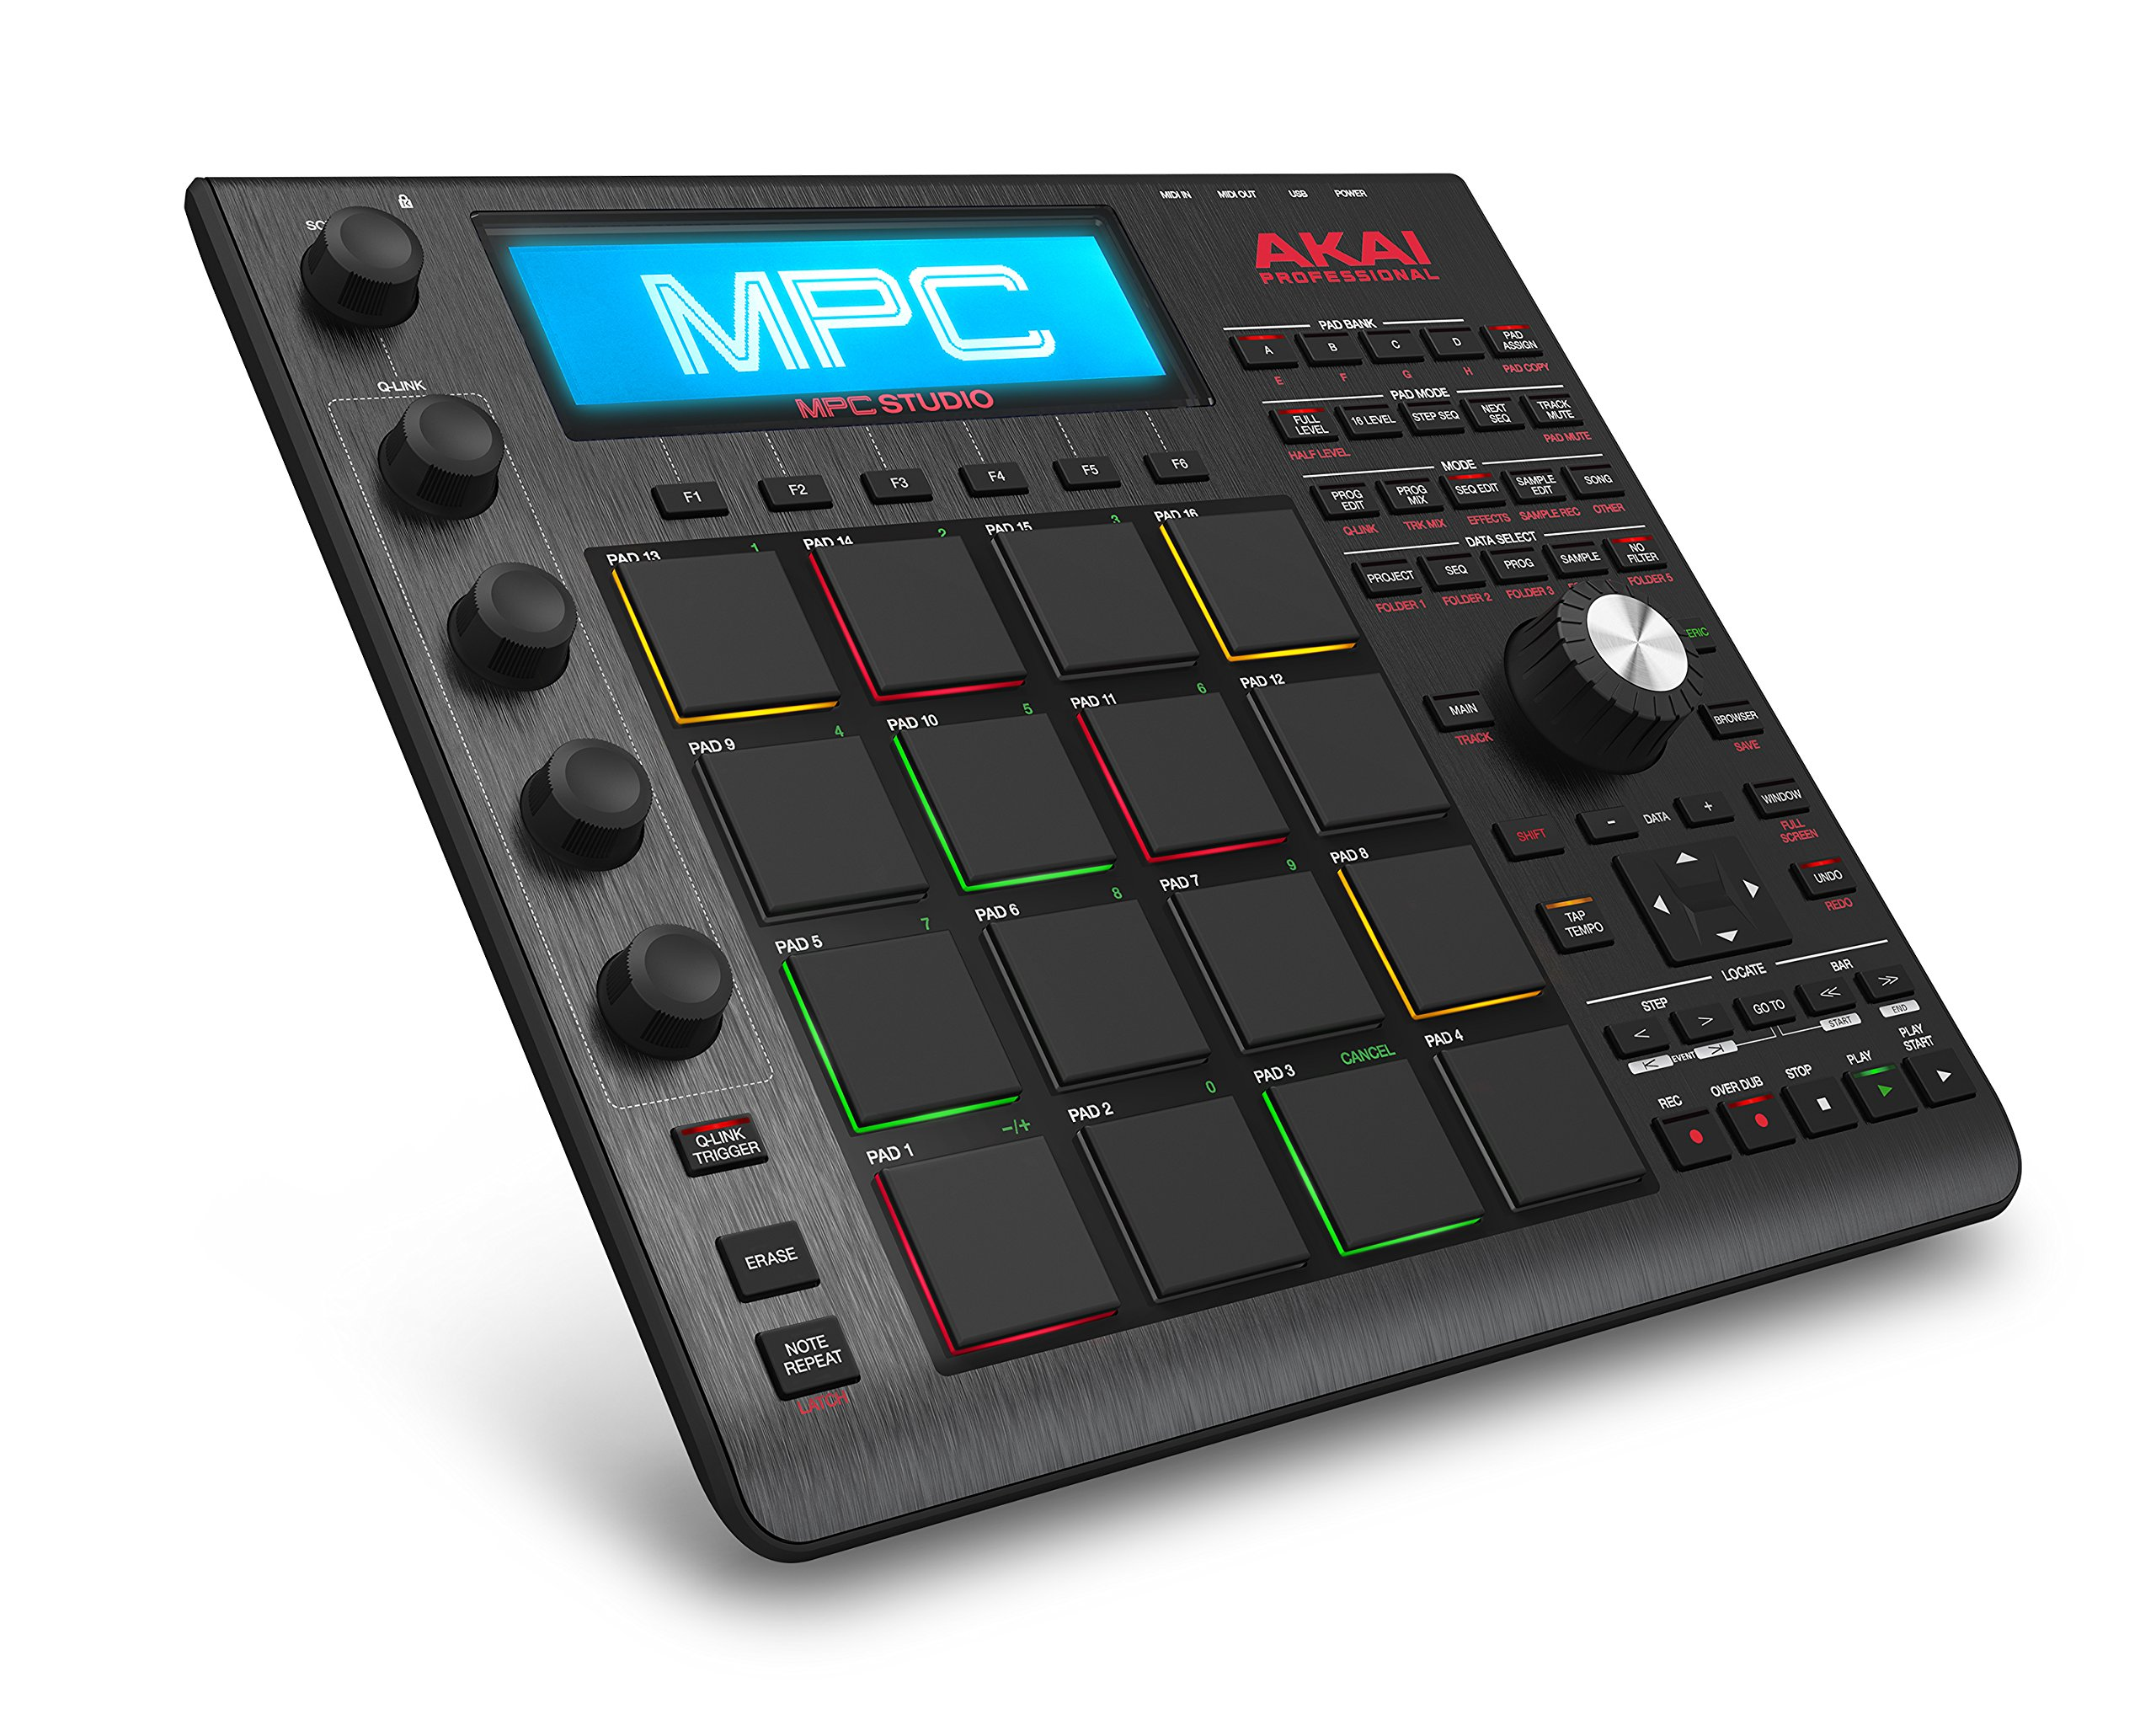 Akai Professional MPC Studio Black | Ultra-Portable MPC With MPC Software (Download), USB Power, LCD Screen, Touch Sensitive Encoders, Brushed Aluminium Body & Data Dial by Akai Professional